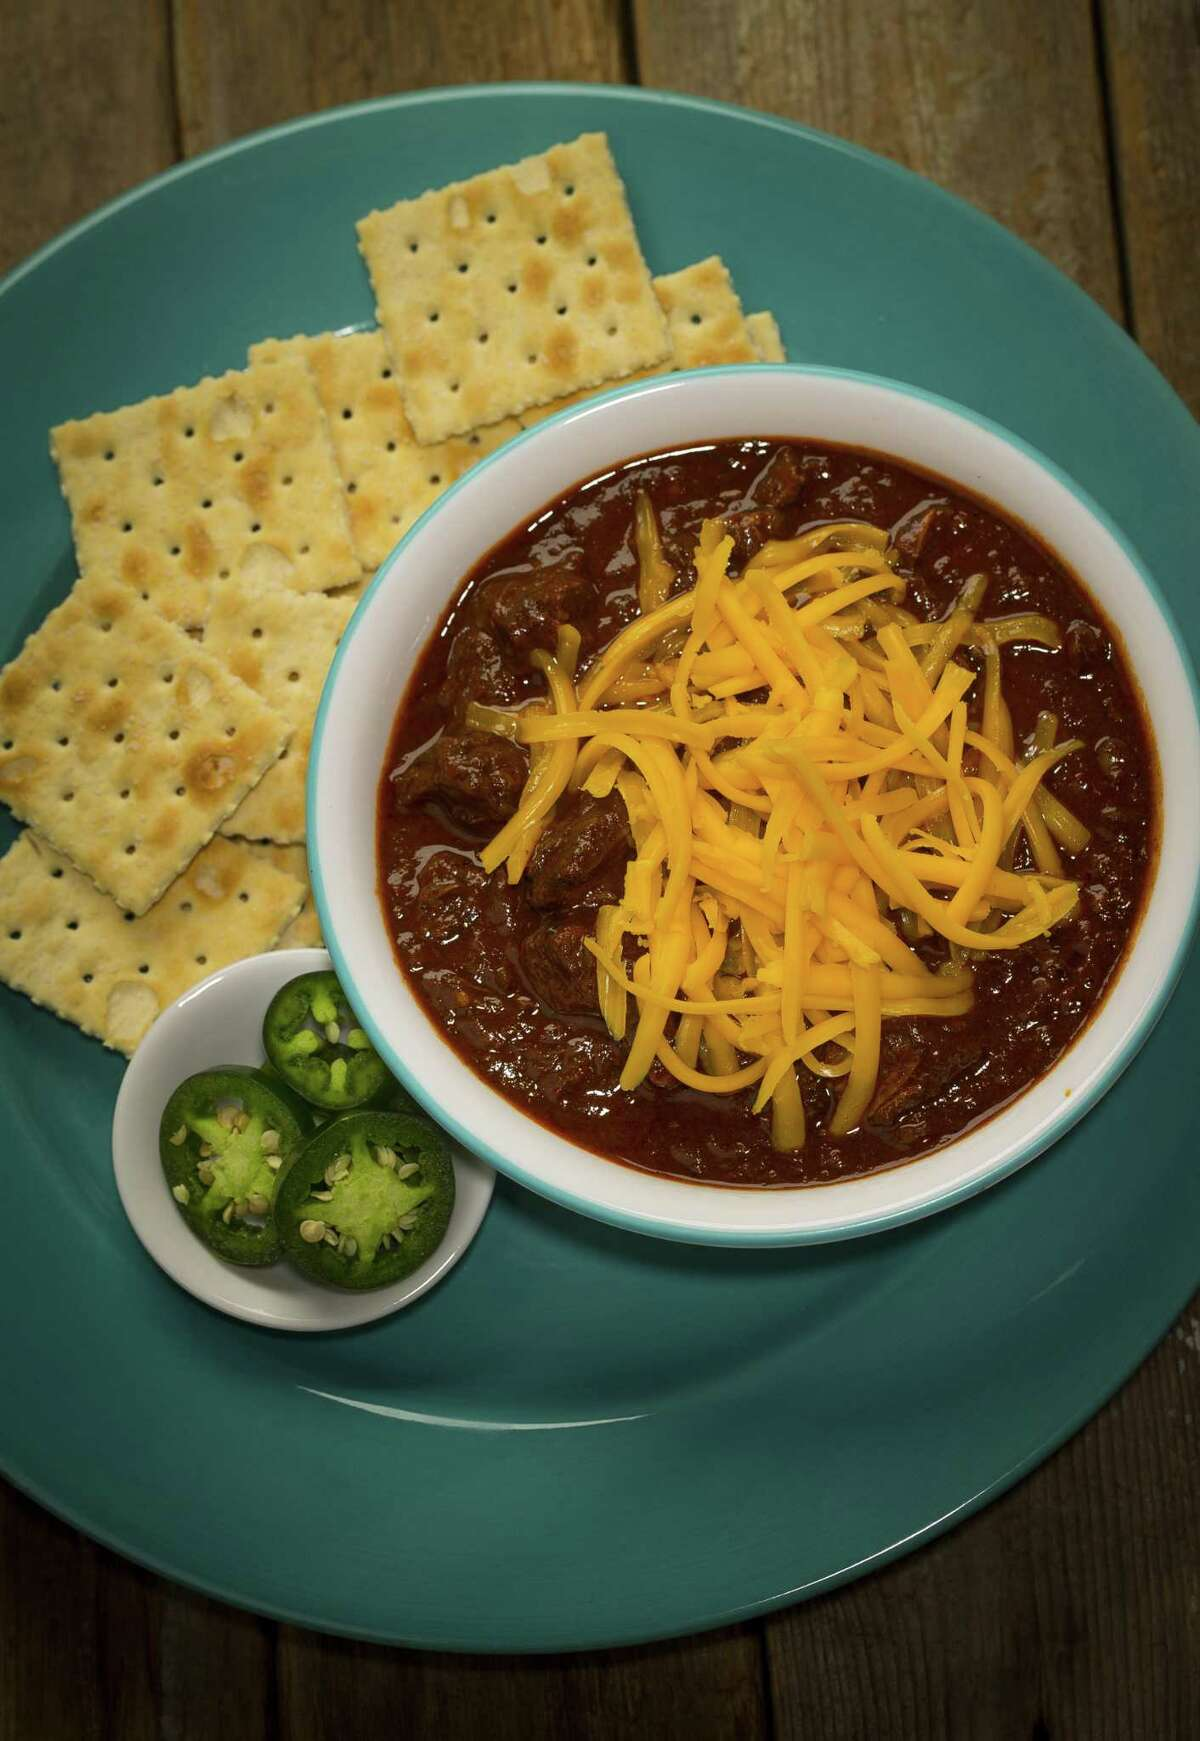 """Seven-Chile Texas Chili from """"The Homesick Texan Cookbook"""" by Lisa Fain is made using chuck roast simmered in a dried chile paste and plenty of spices including cinnamon, clove and allspice as well as brewed coffee and beer."""